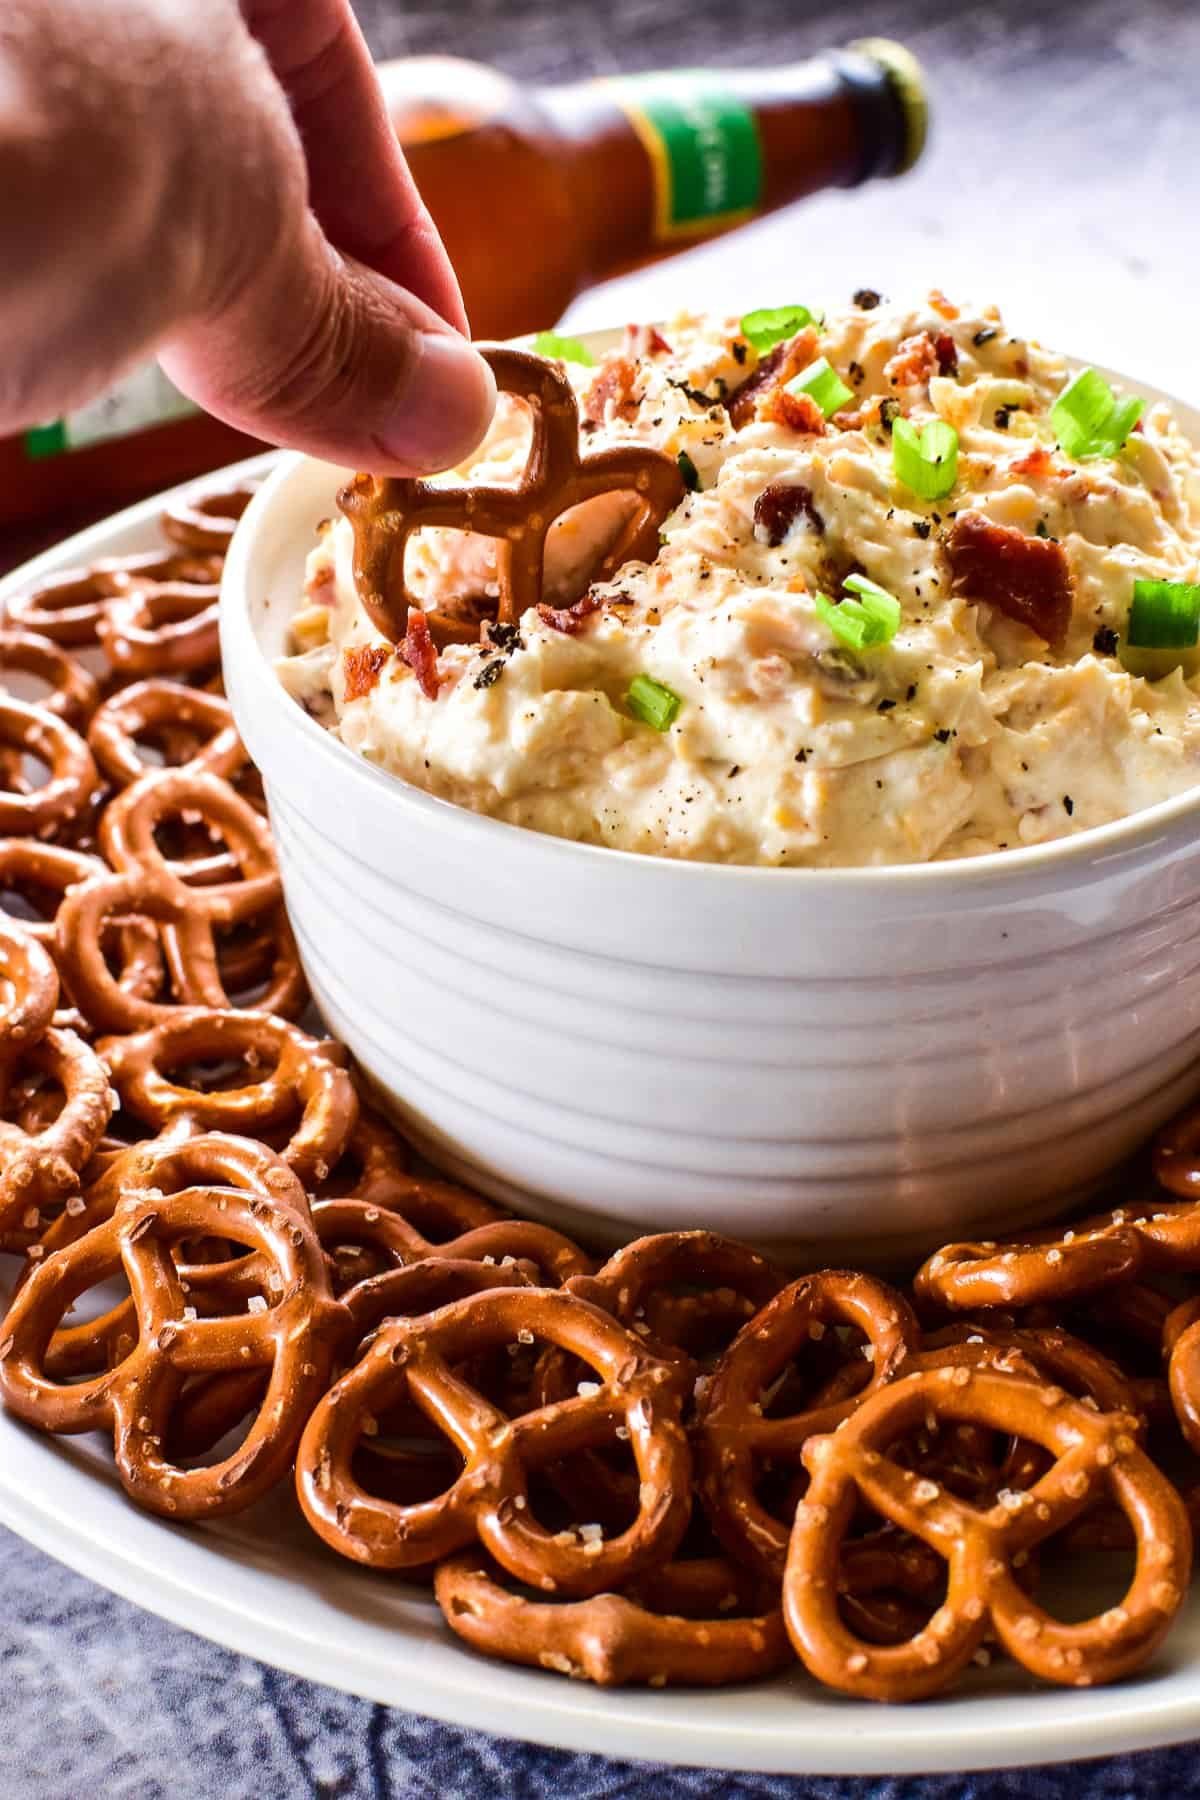 Pretzel dipping into Beer Cheese Dip